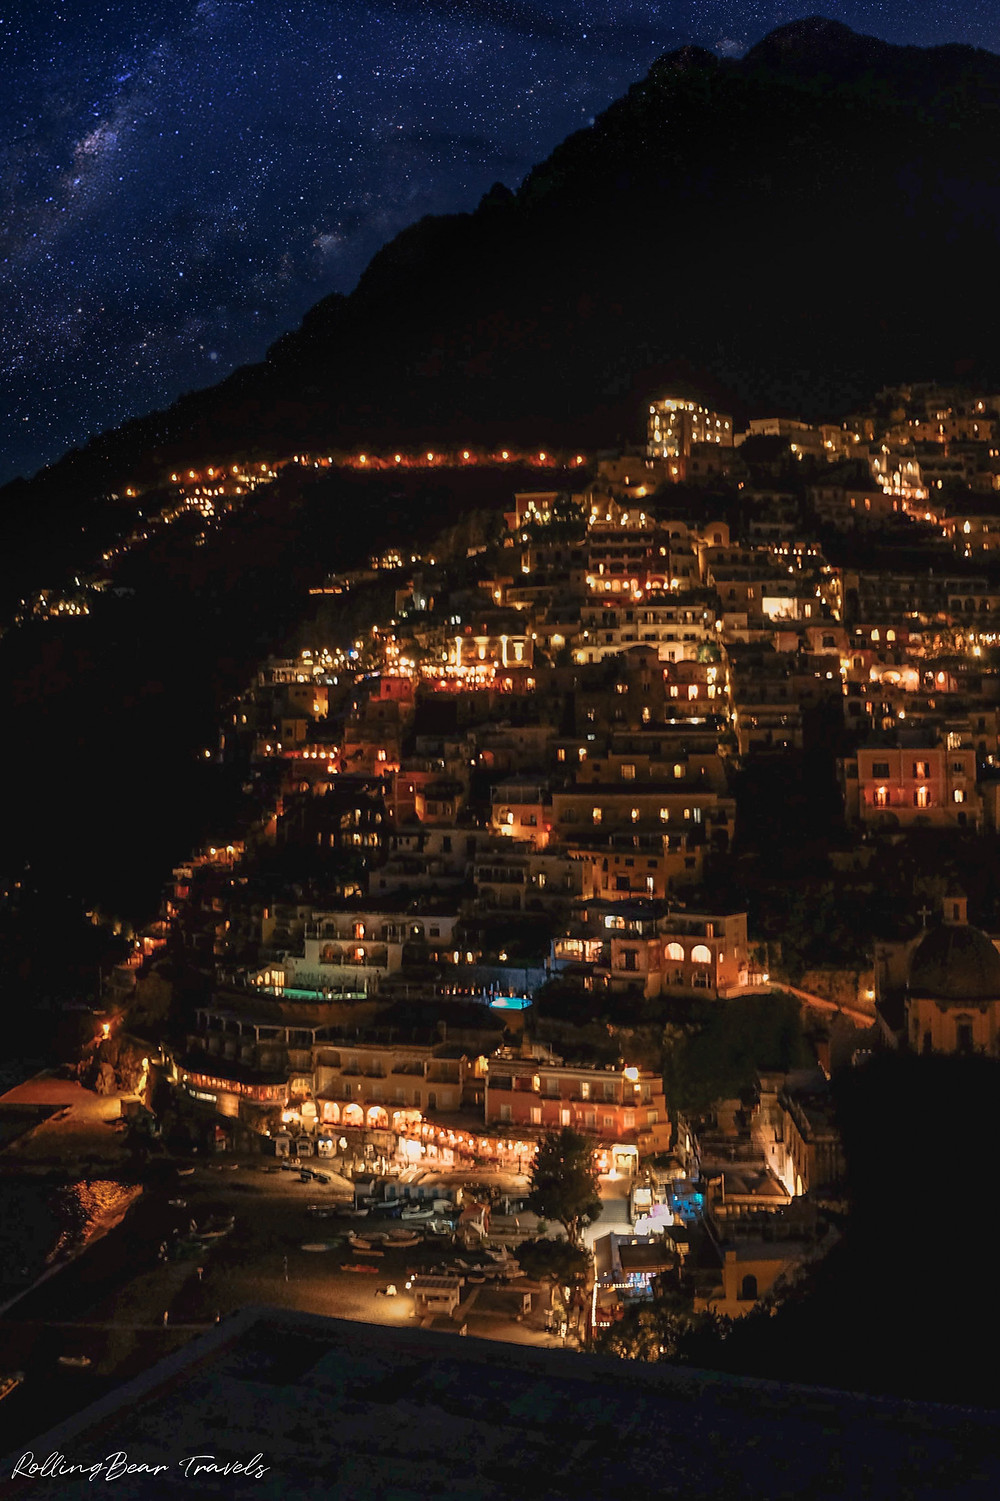 Beautiful Italy travel photography: Positano night scene under a starry sky | RollingBear Travels.